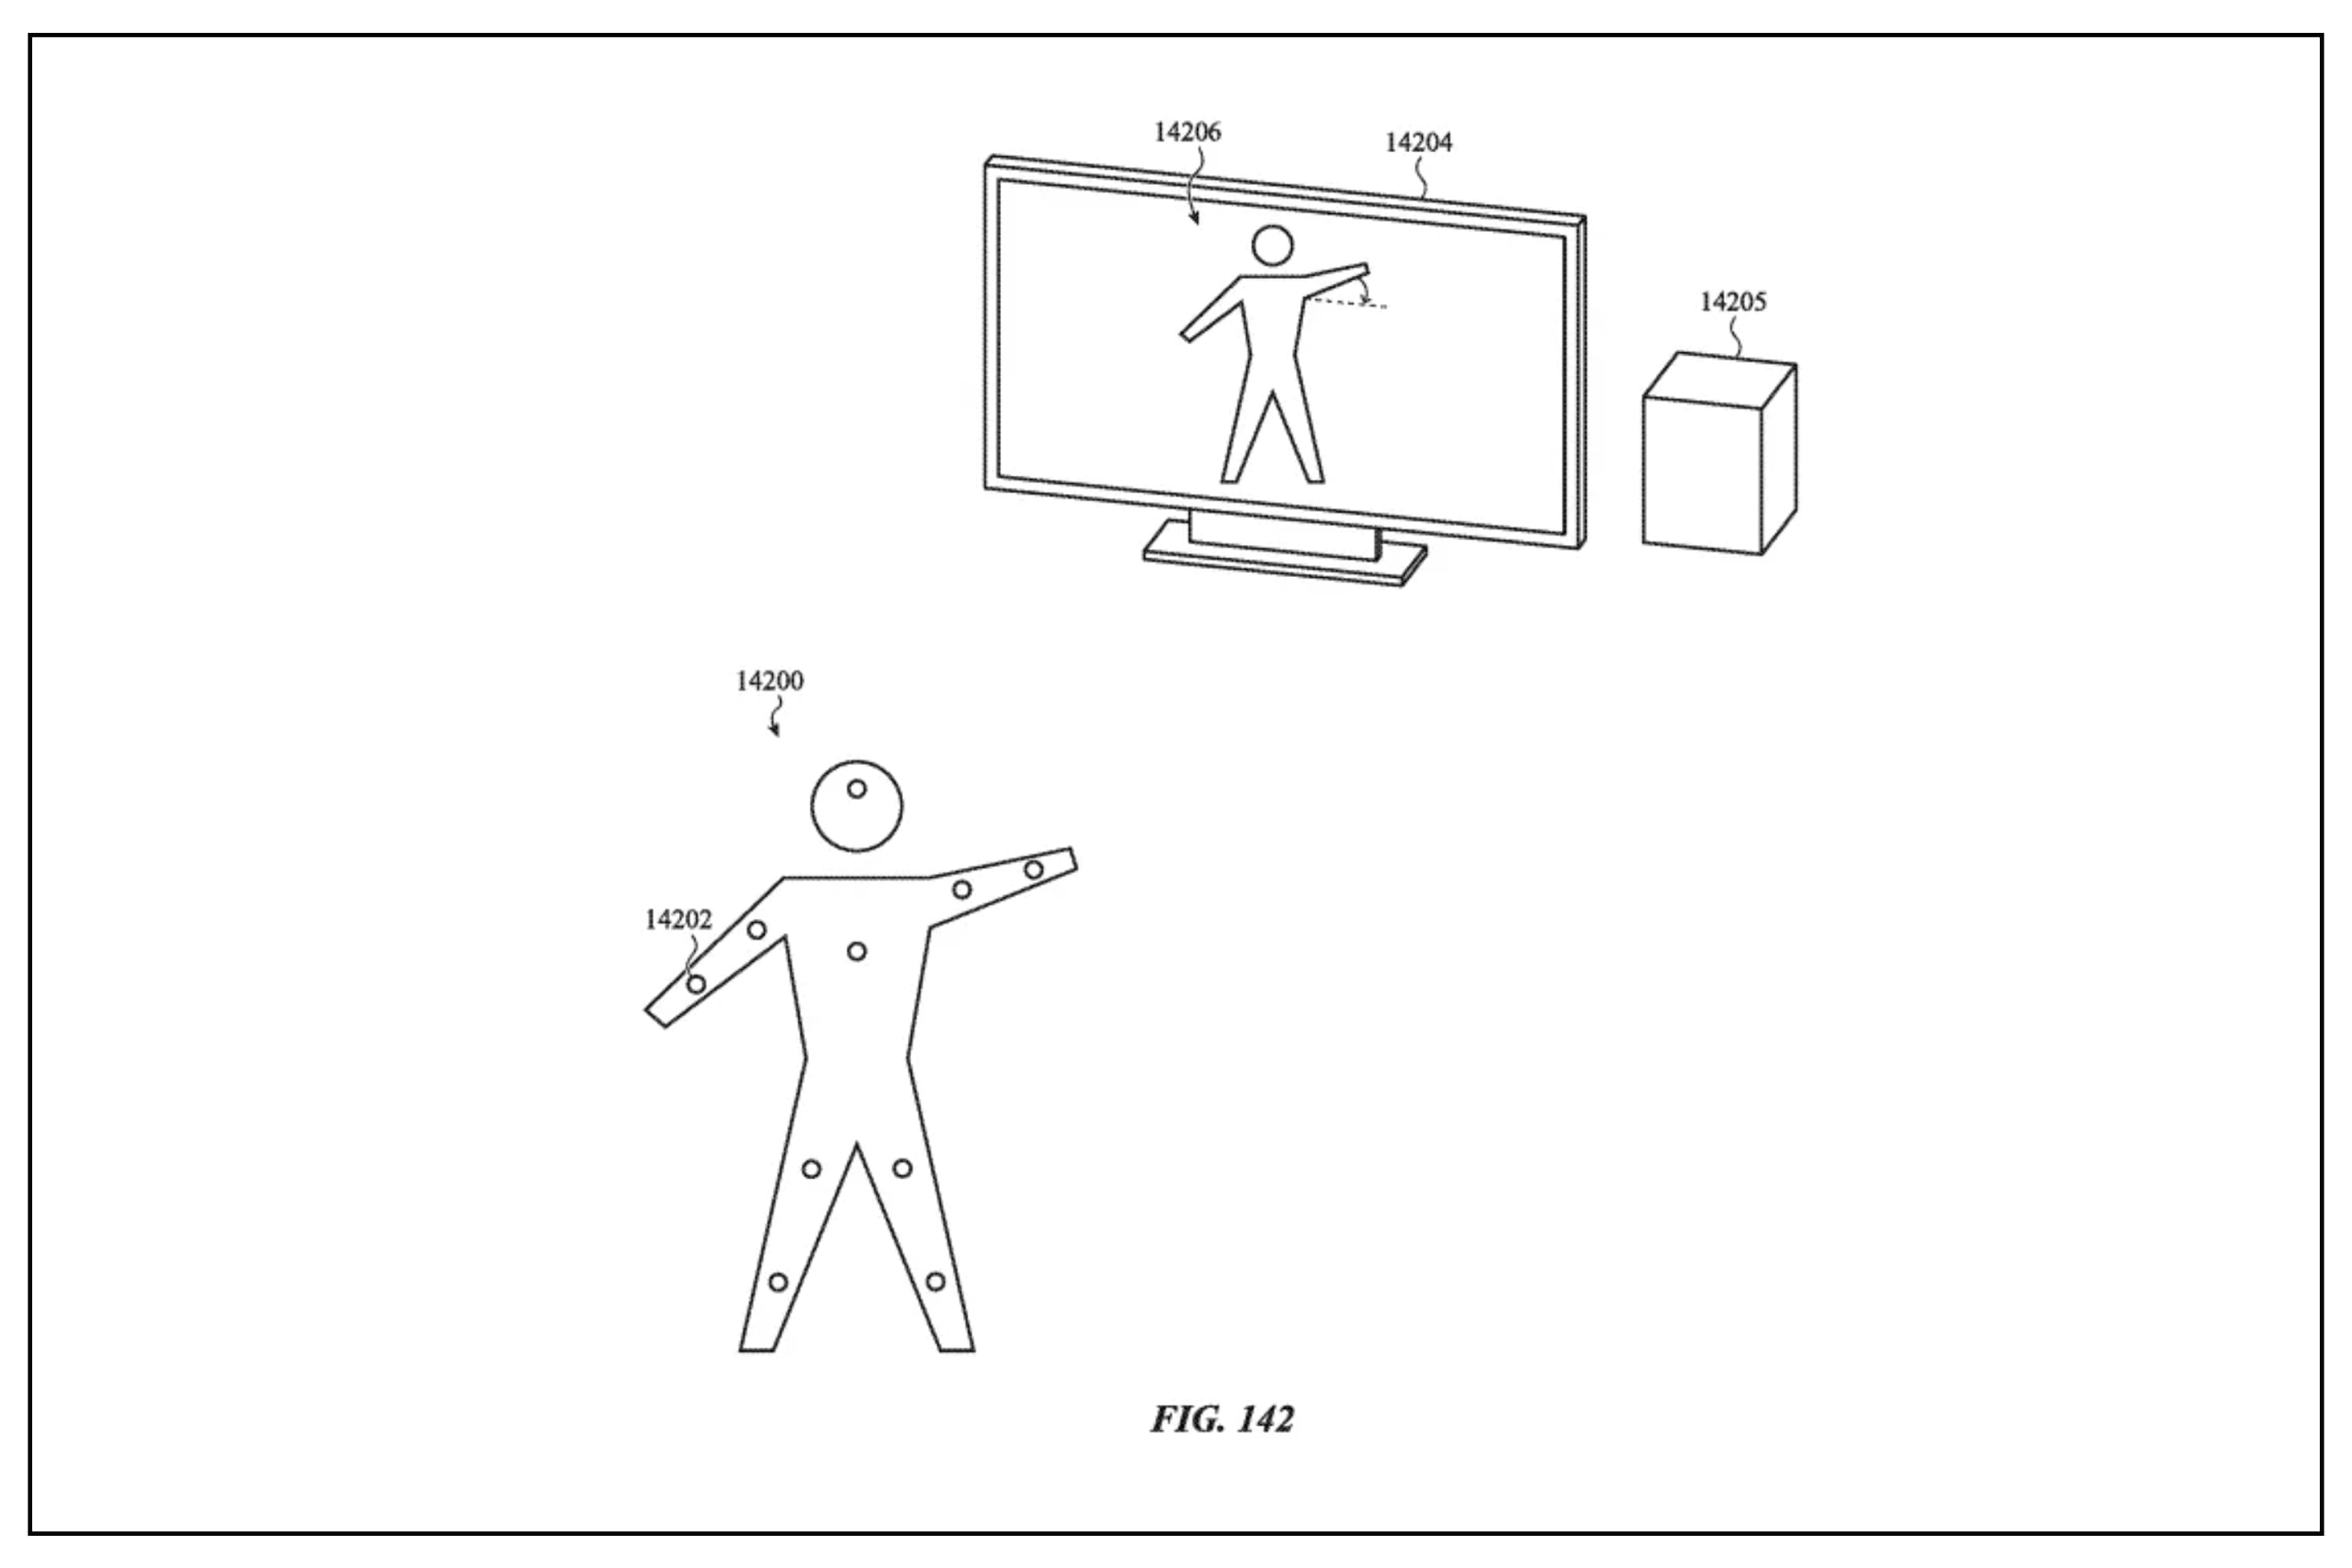 apple-airtags-the-original-plan-and-ar-gaming-and-medical-compatibilities-20201026-2